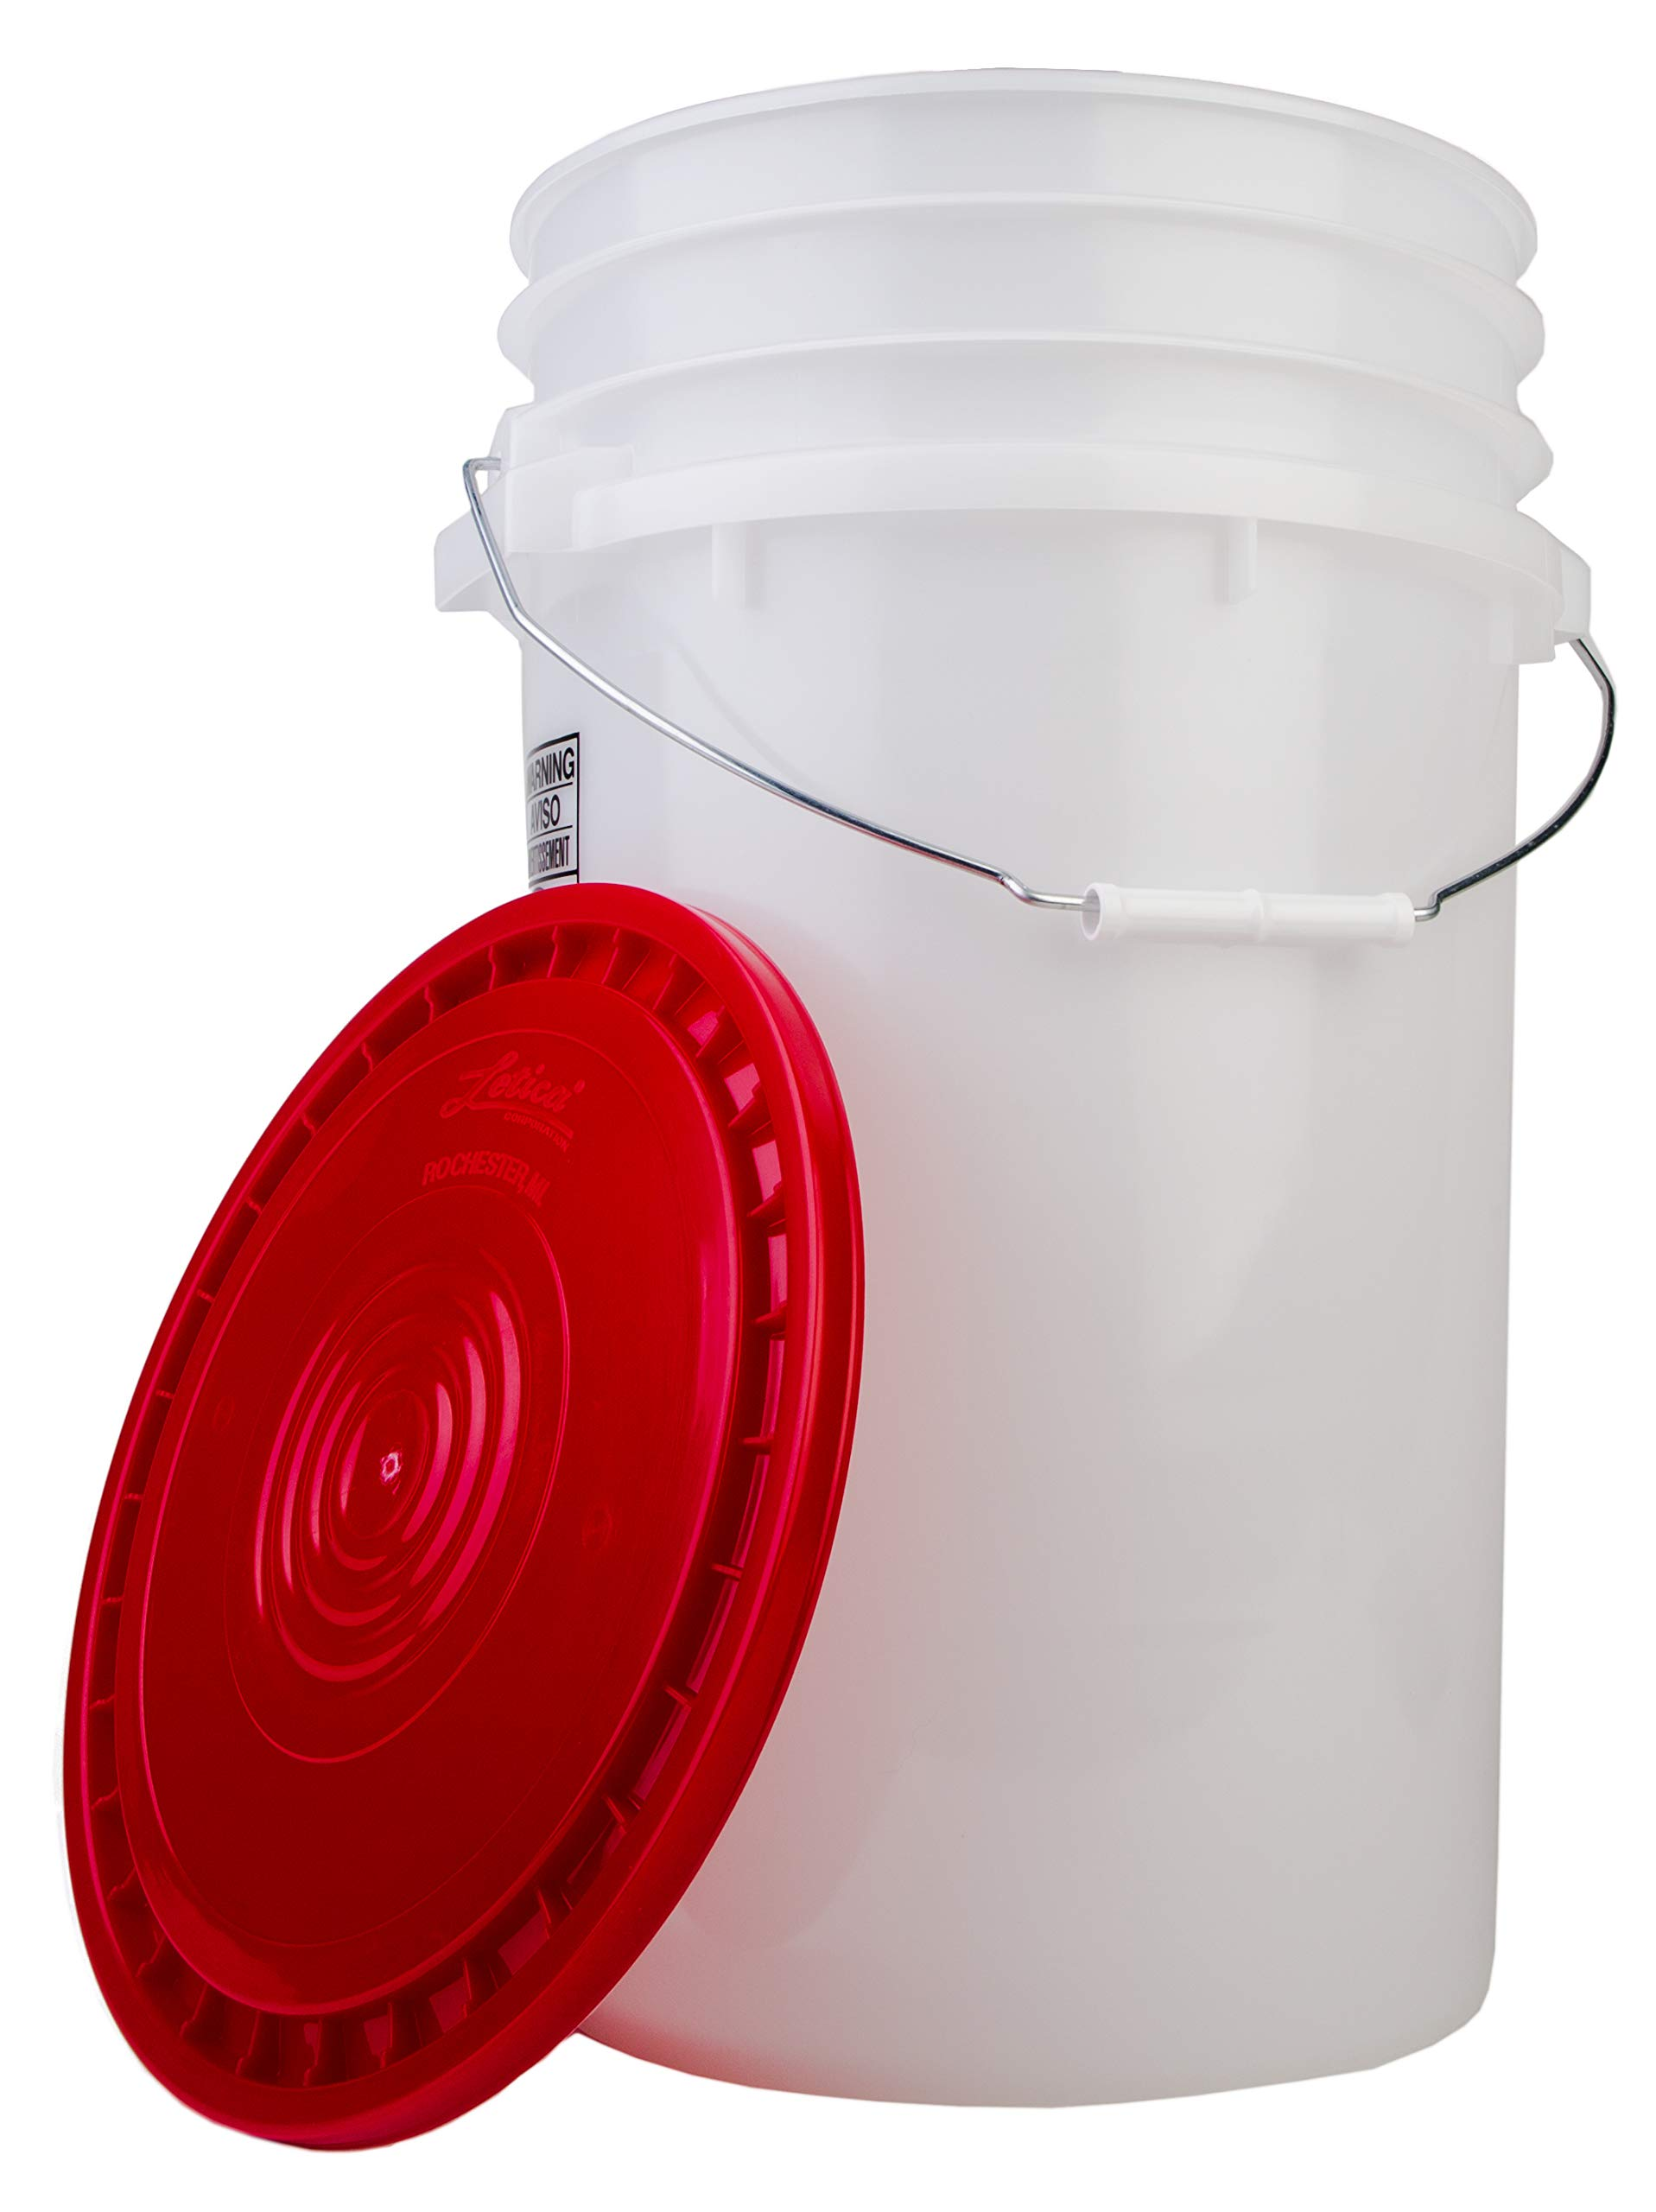 Hudson Exchange Car Wash, Dust Collector & General Use 7 Gallon Bucket with Red Lid, HDPE, Natural